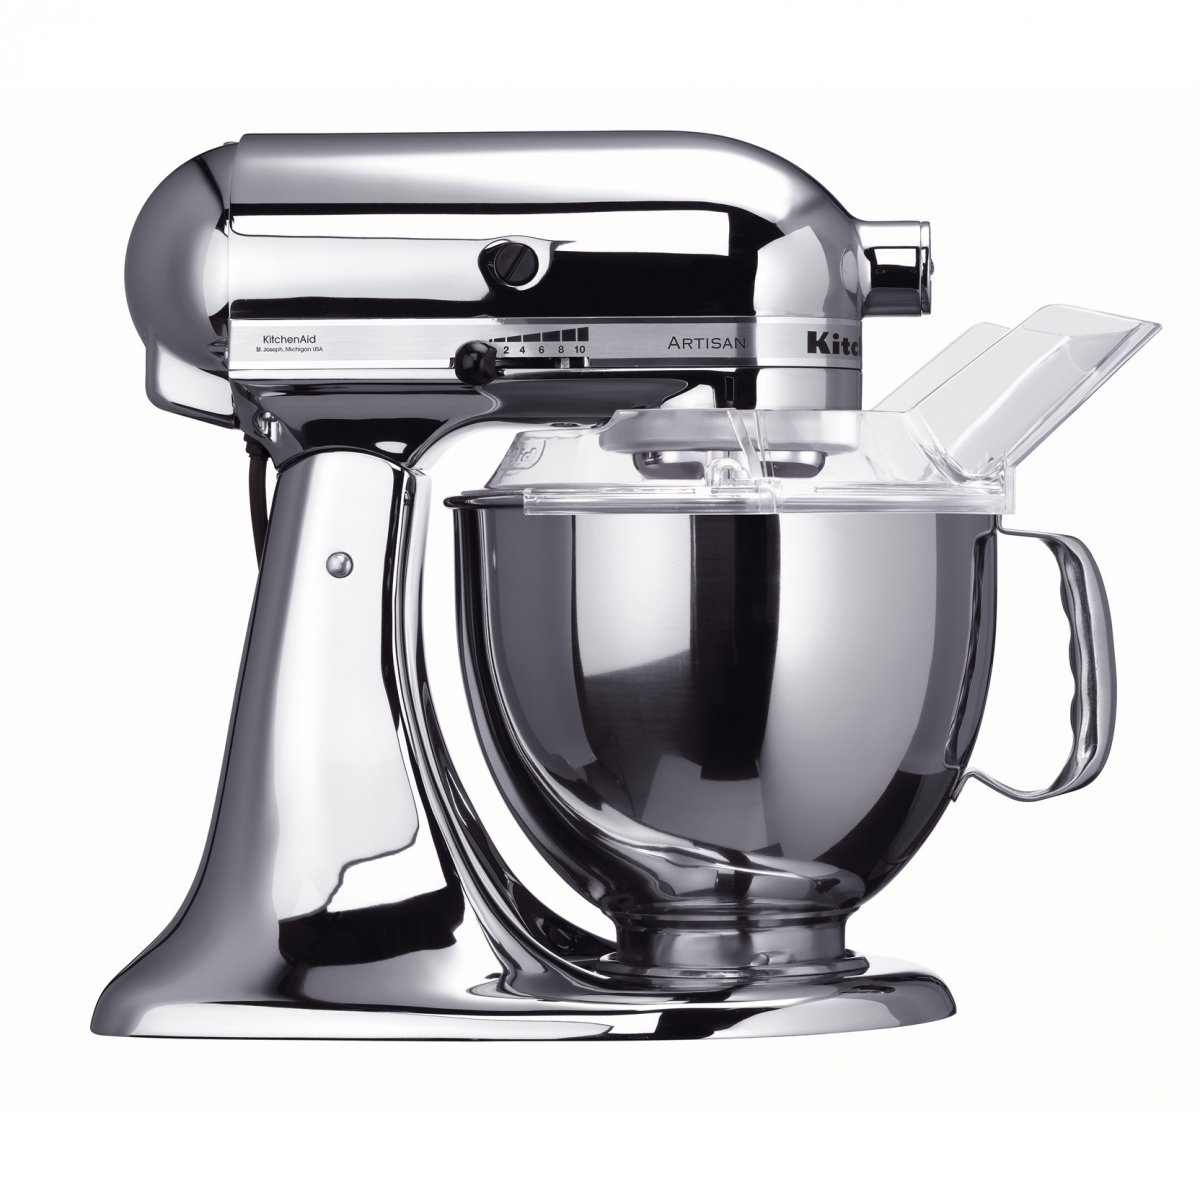 kitchenaid robot artisan 5ksm150psecr kitchenaid elettrodomestici piccoli elettrodomestici. Black Bedroom Furniture Sets. Home Design Ideas